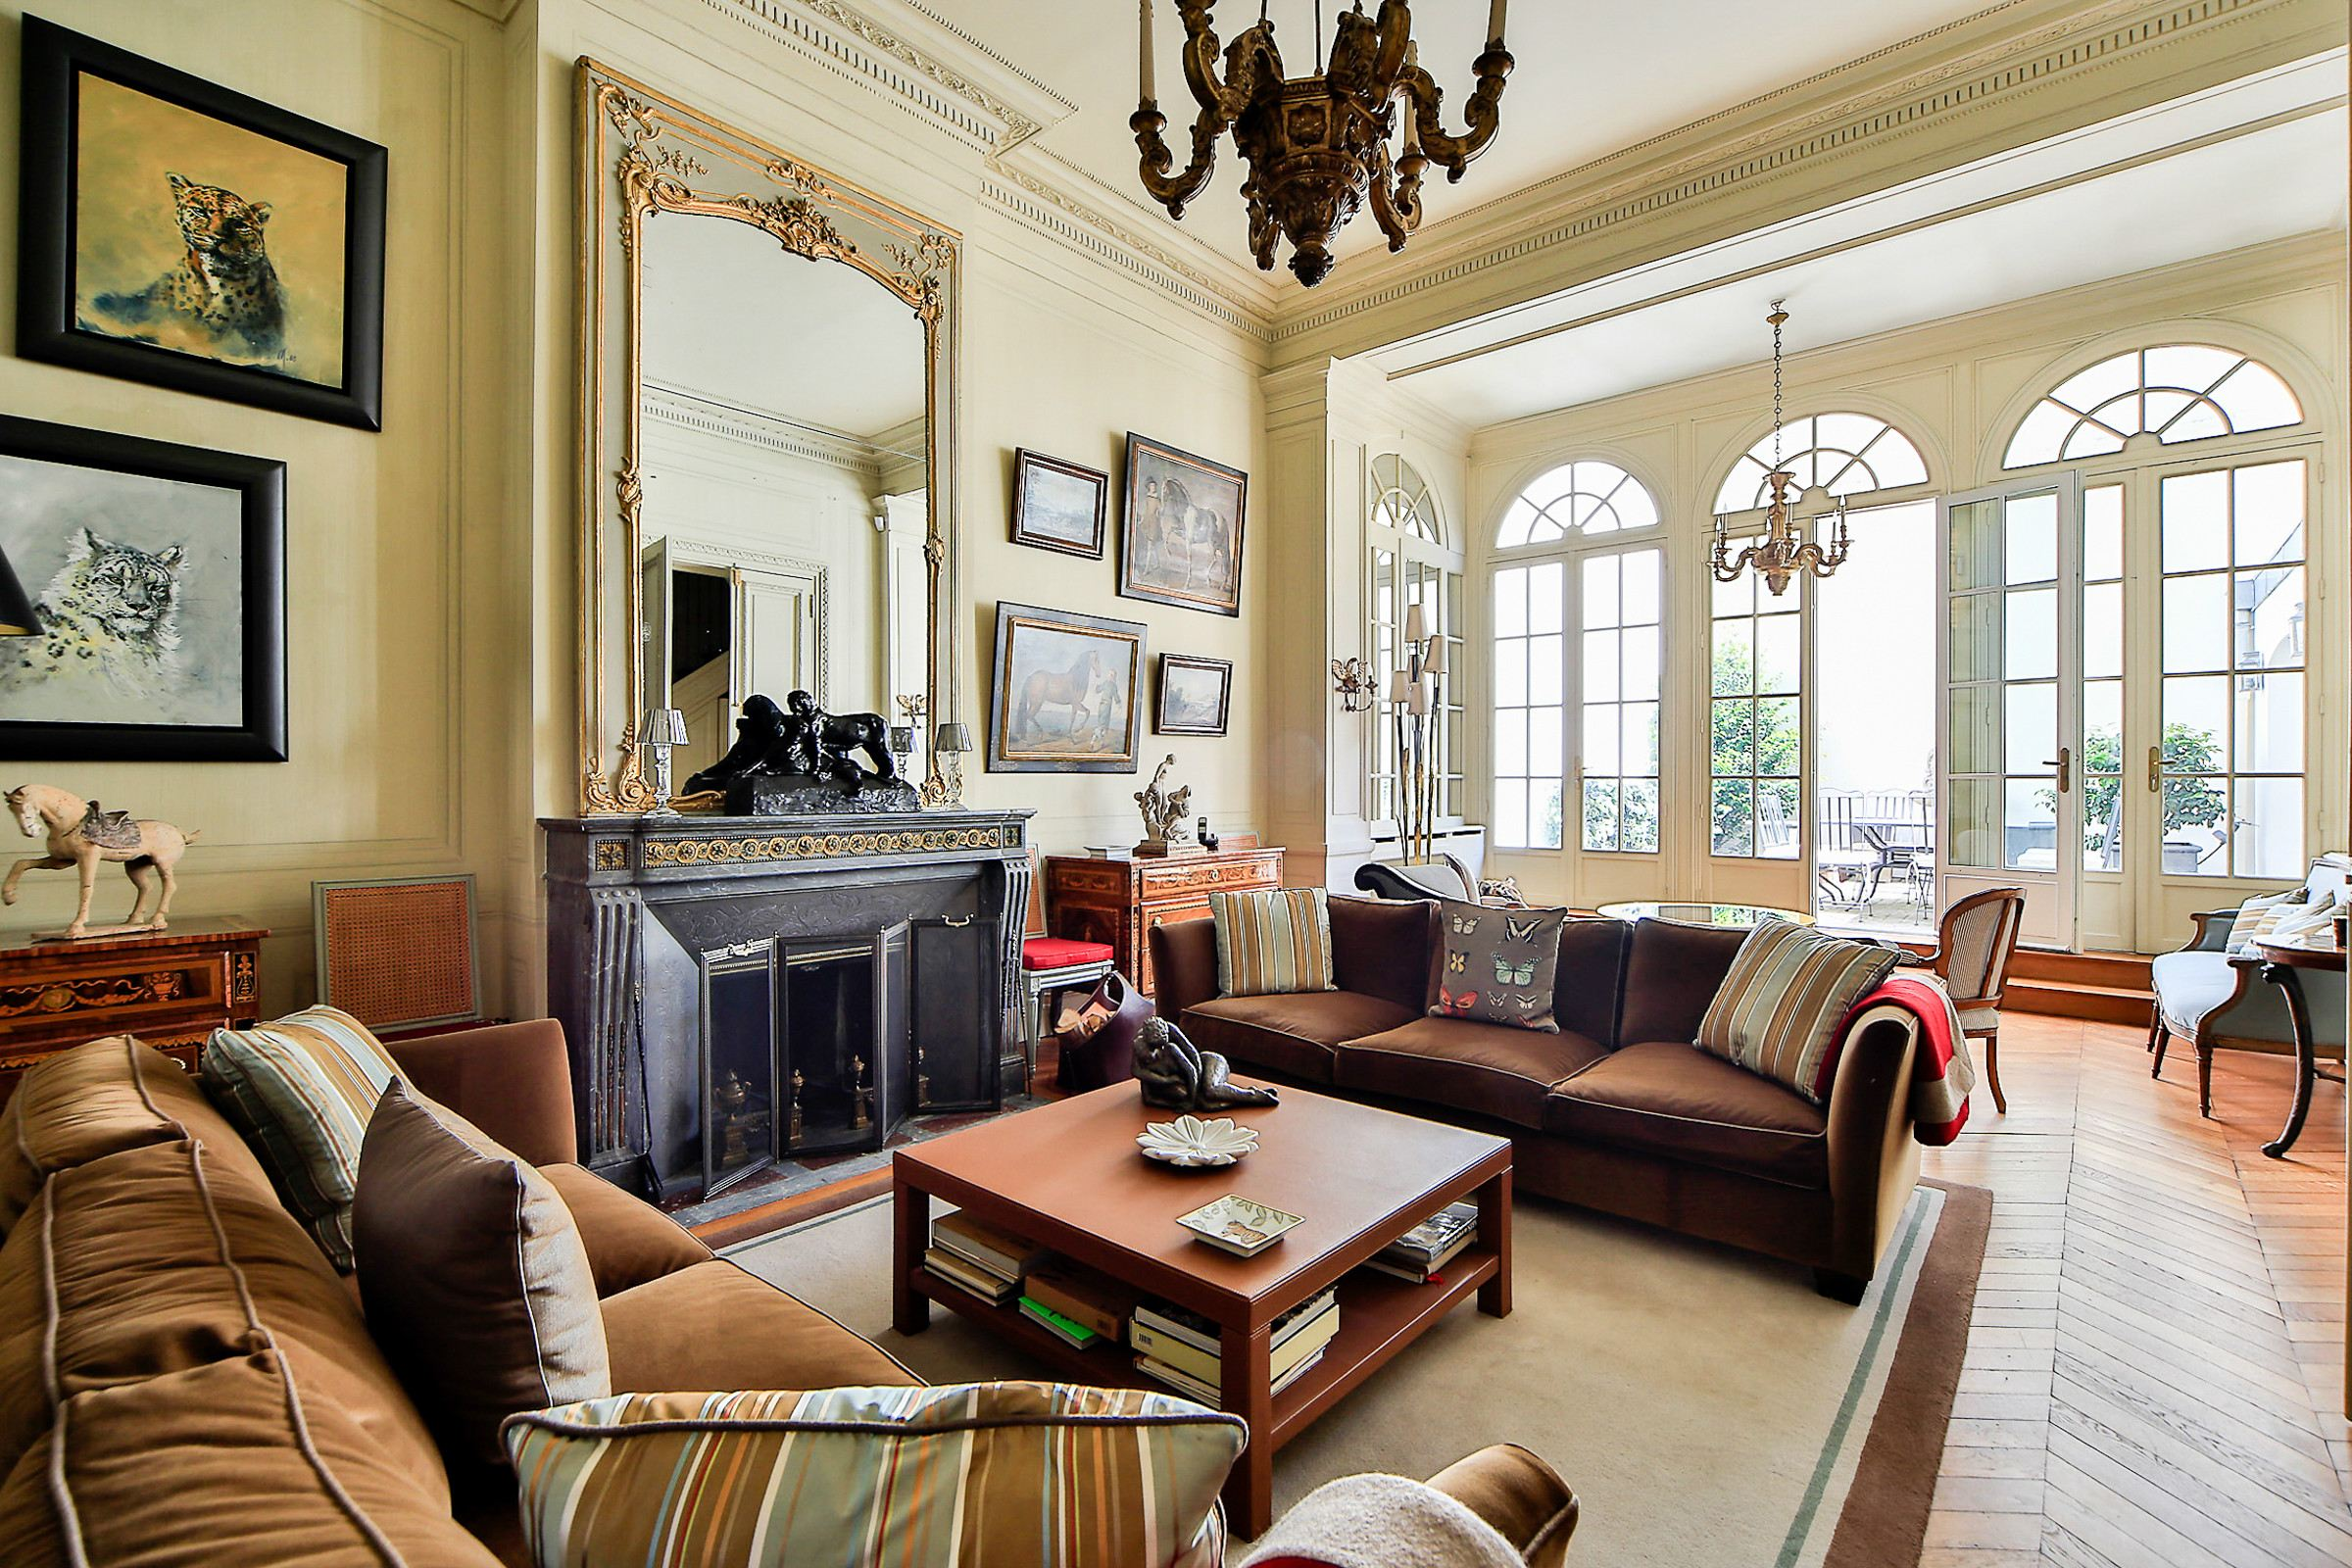 Appartamento per Vendita alle ore Paris 16 - Etoile. Apartment. Wonderful high ceilings. Paris, Parigi 75116 Francia